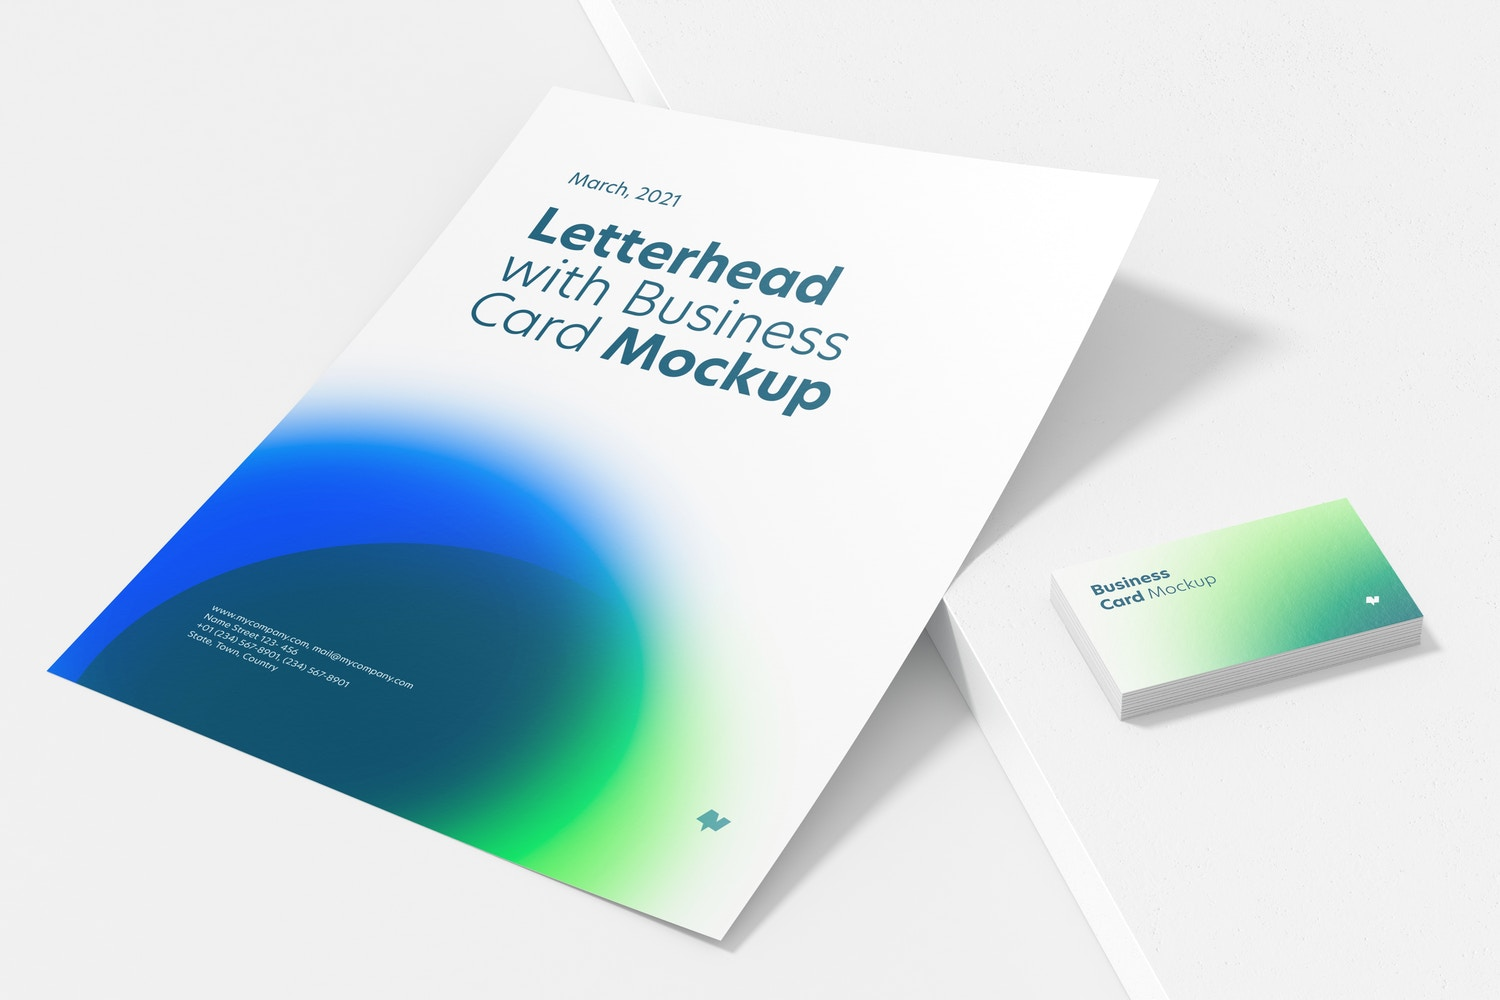 Letterhead with Business Card Mockup, Perspective